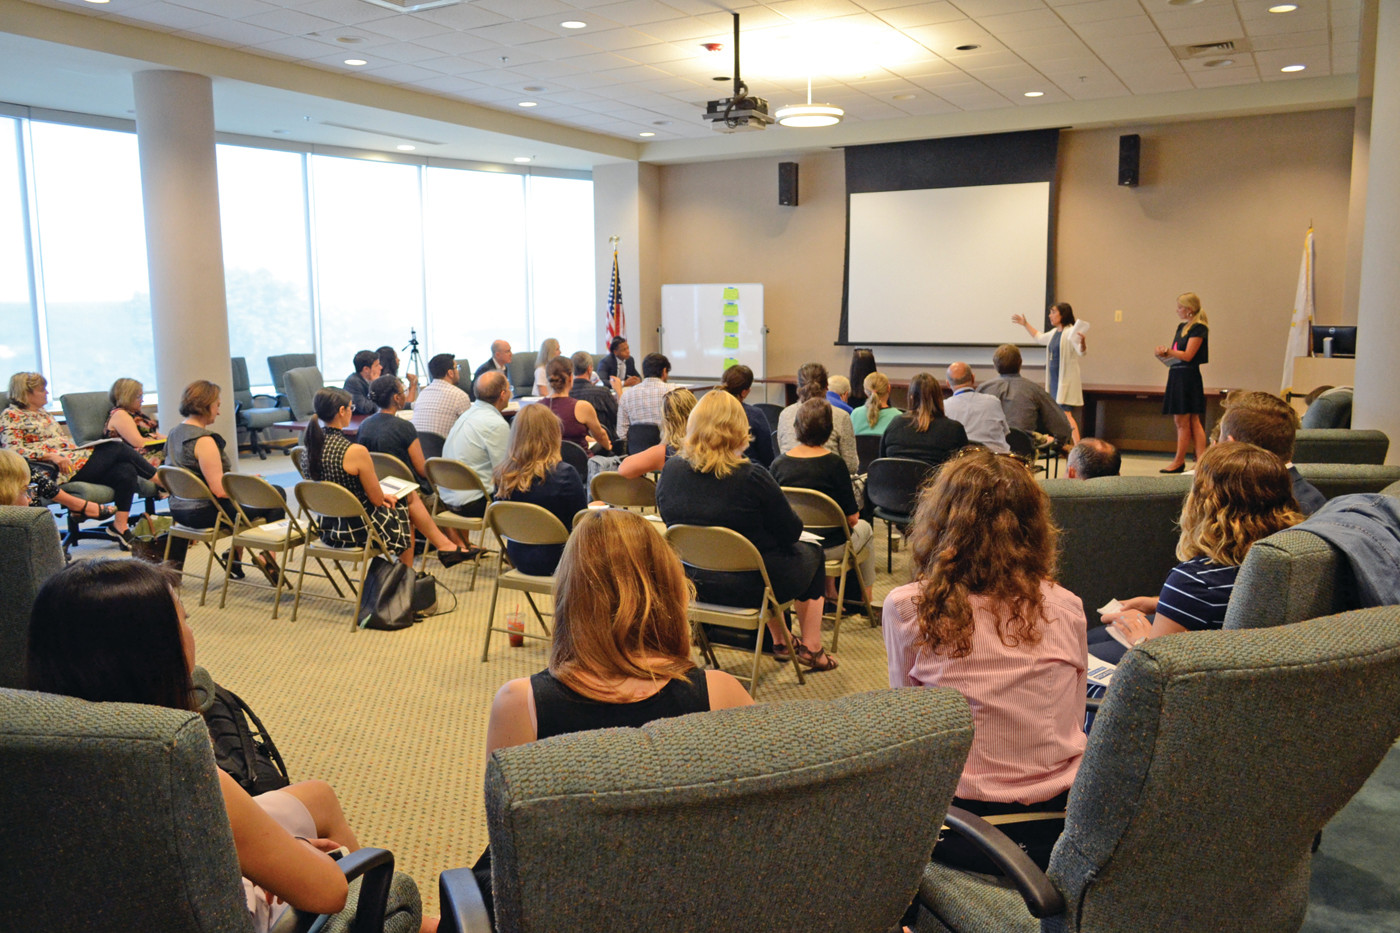 LIVELY ROOM: The 4th floor board room at CCRI's Knight Campus in Warwick was the host for the competitive Pitch Fest from the Rhode Island Department of Education (RIDE).